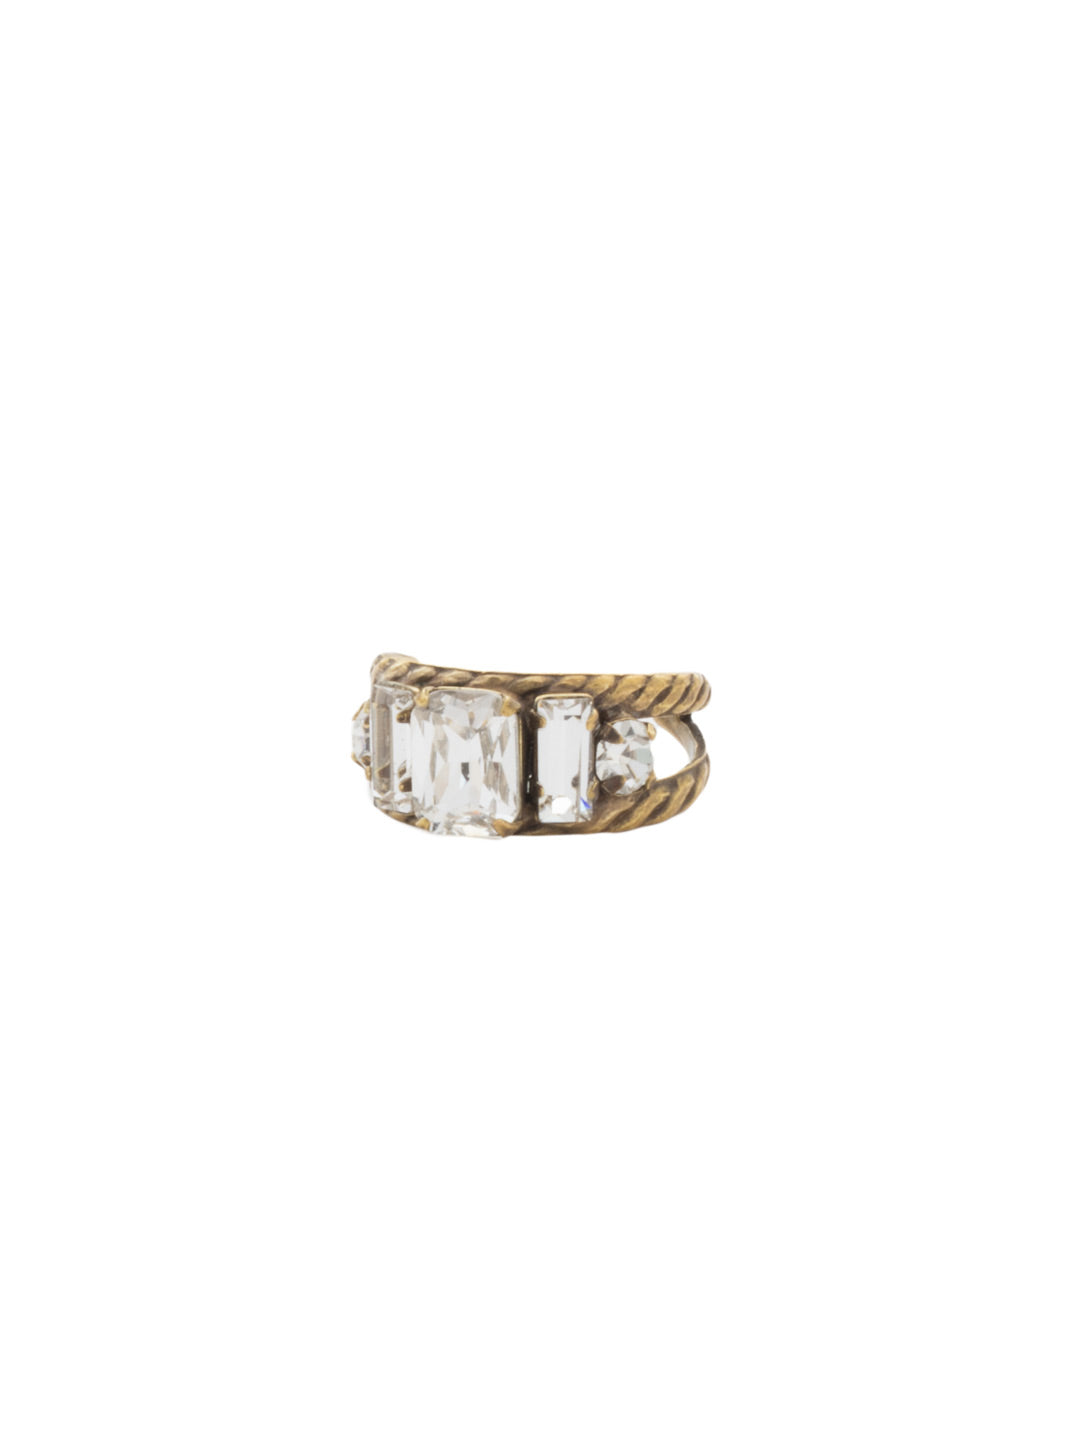 Petite Geo Band Ring - RDG78AGCRY